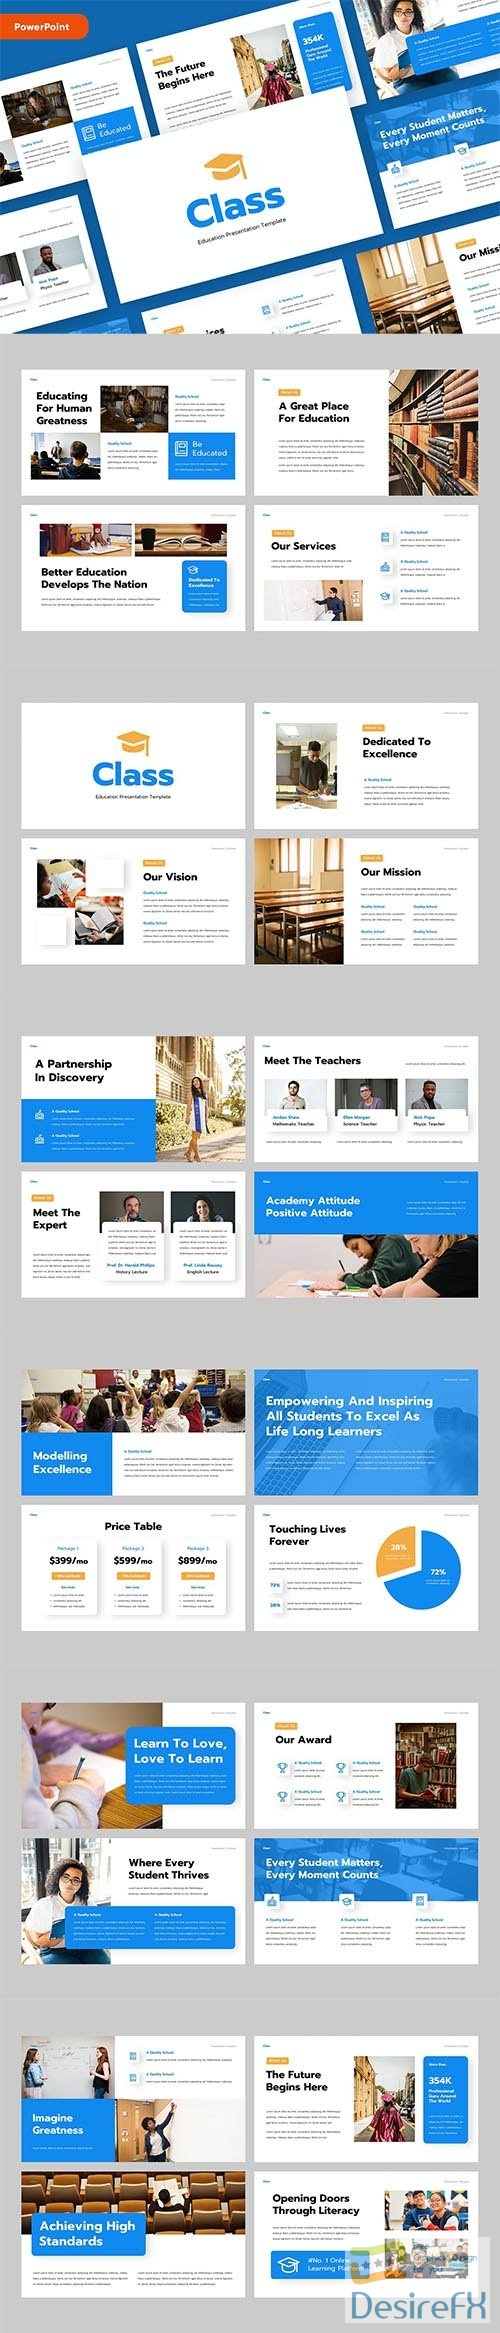 CLASS - Education PowerPoint, Keynote and Google Slides Template